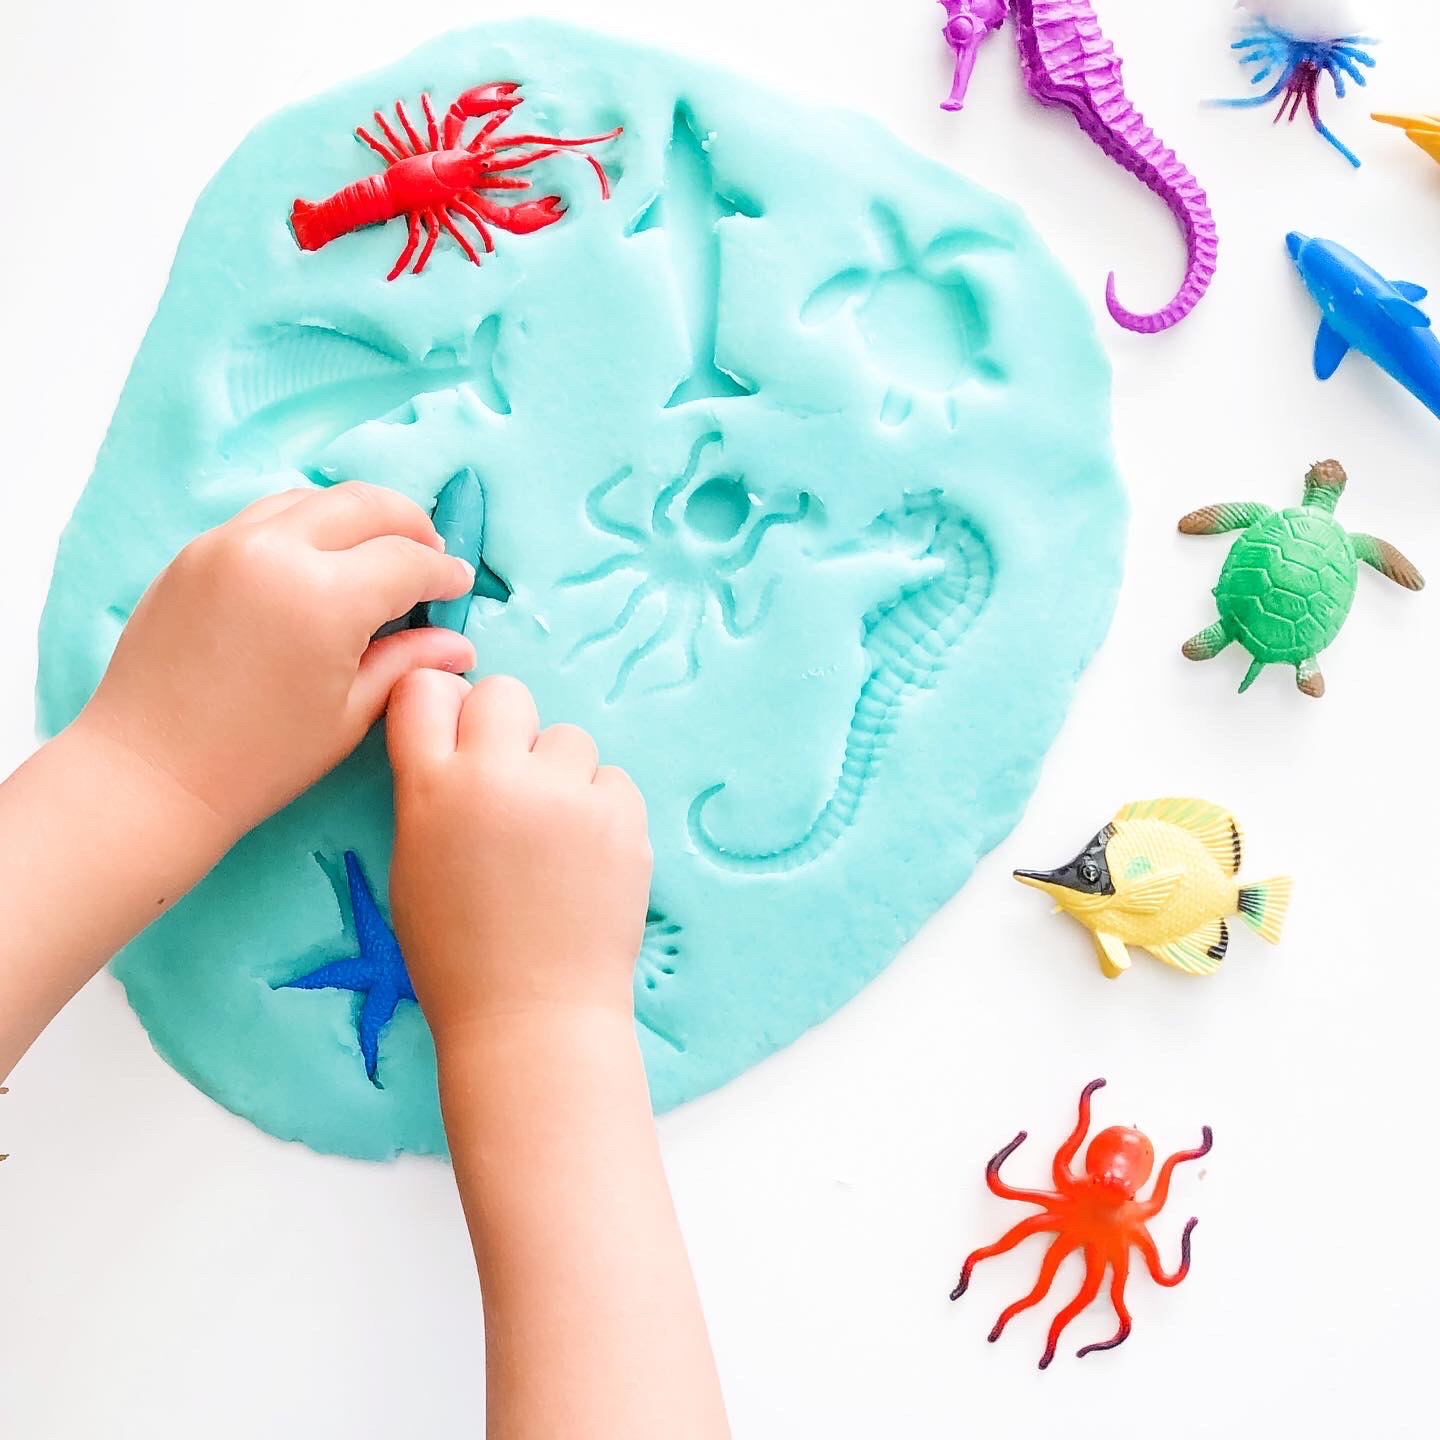 12 Ocean Themed Play Ideas That Your Toddler will Love